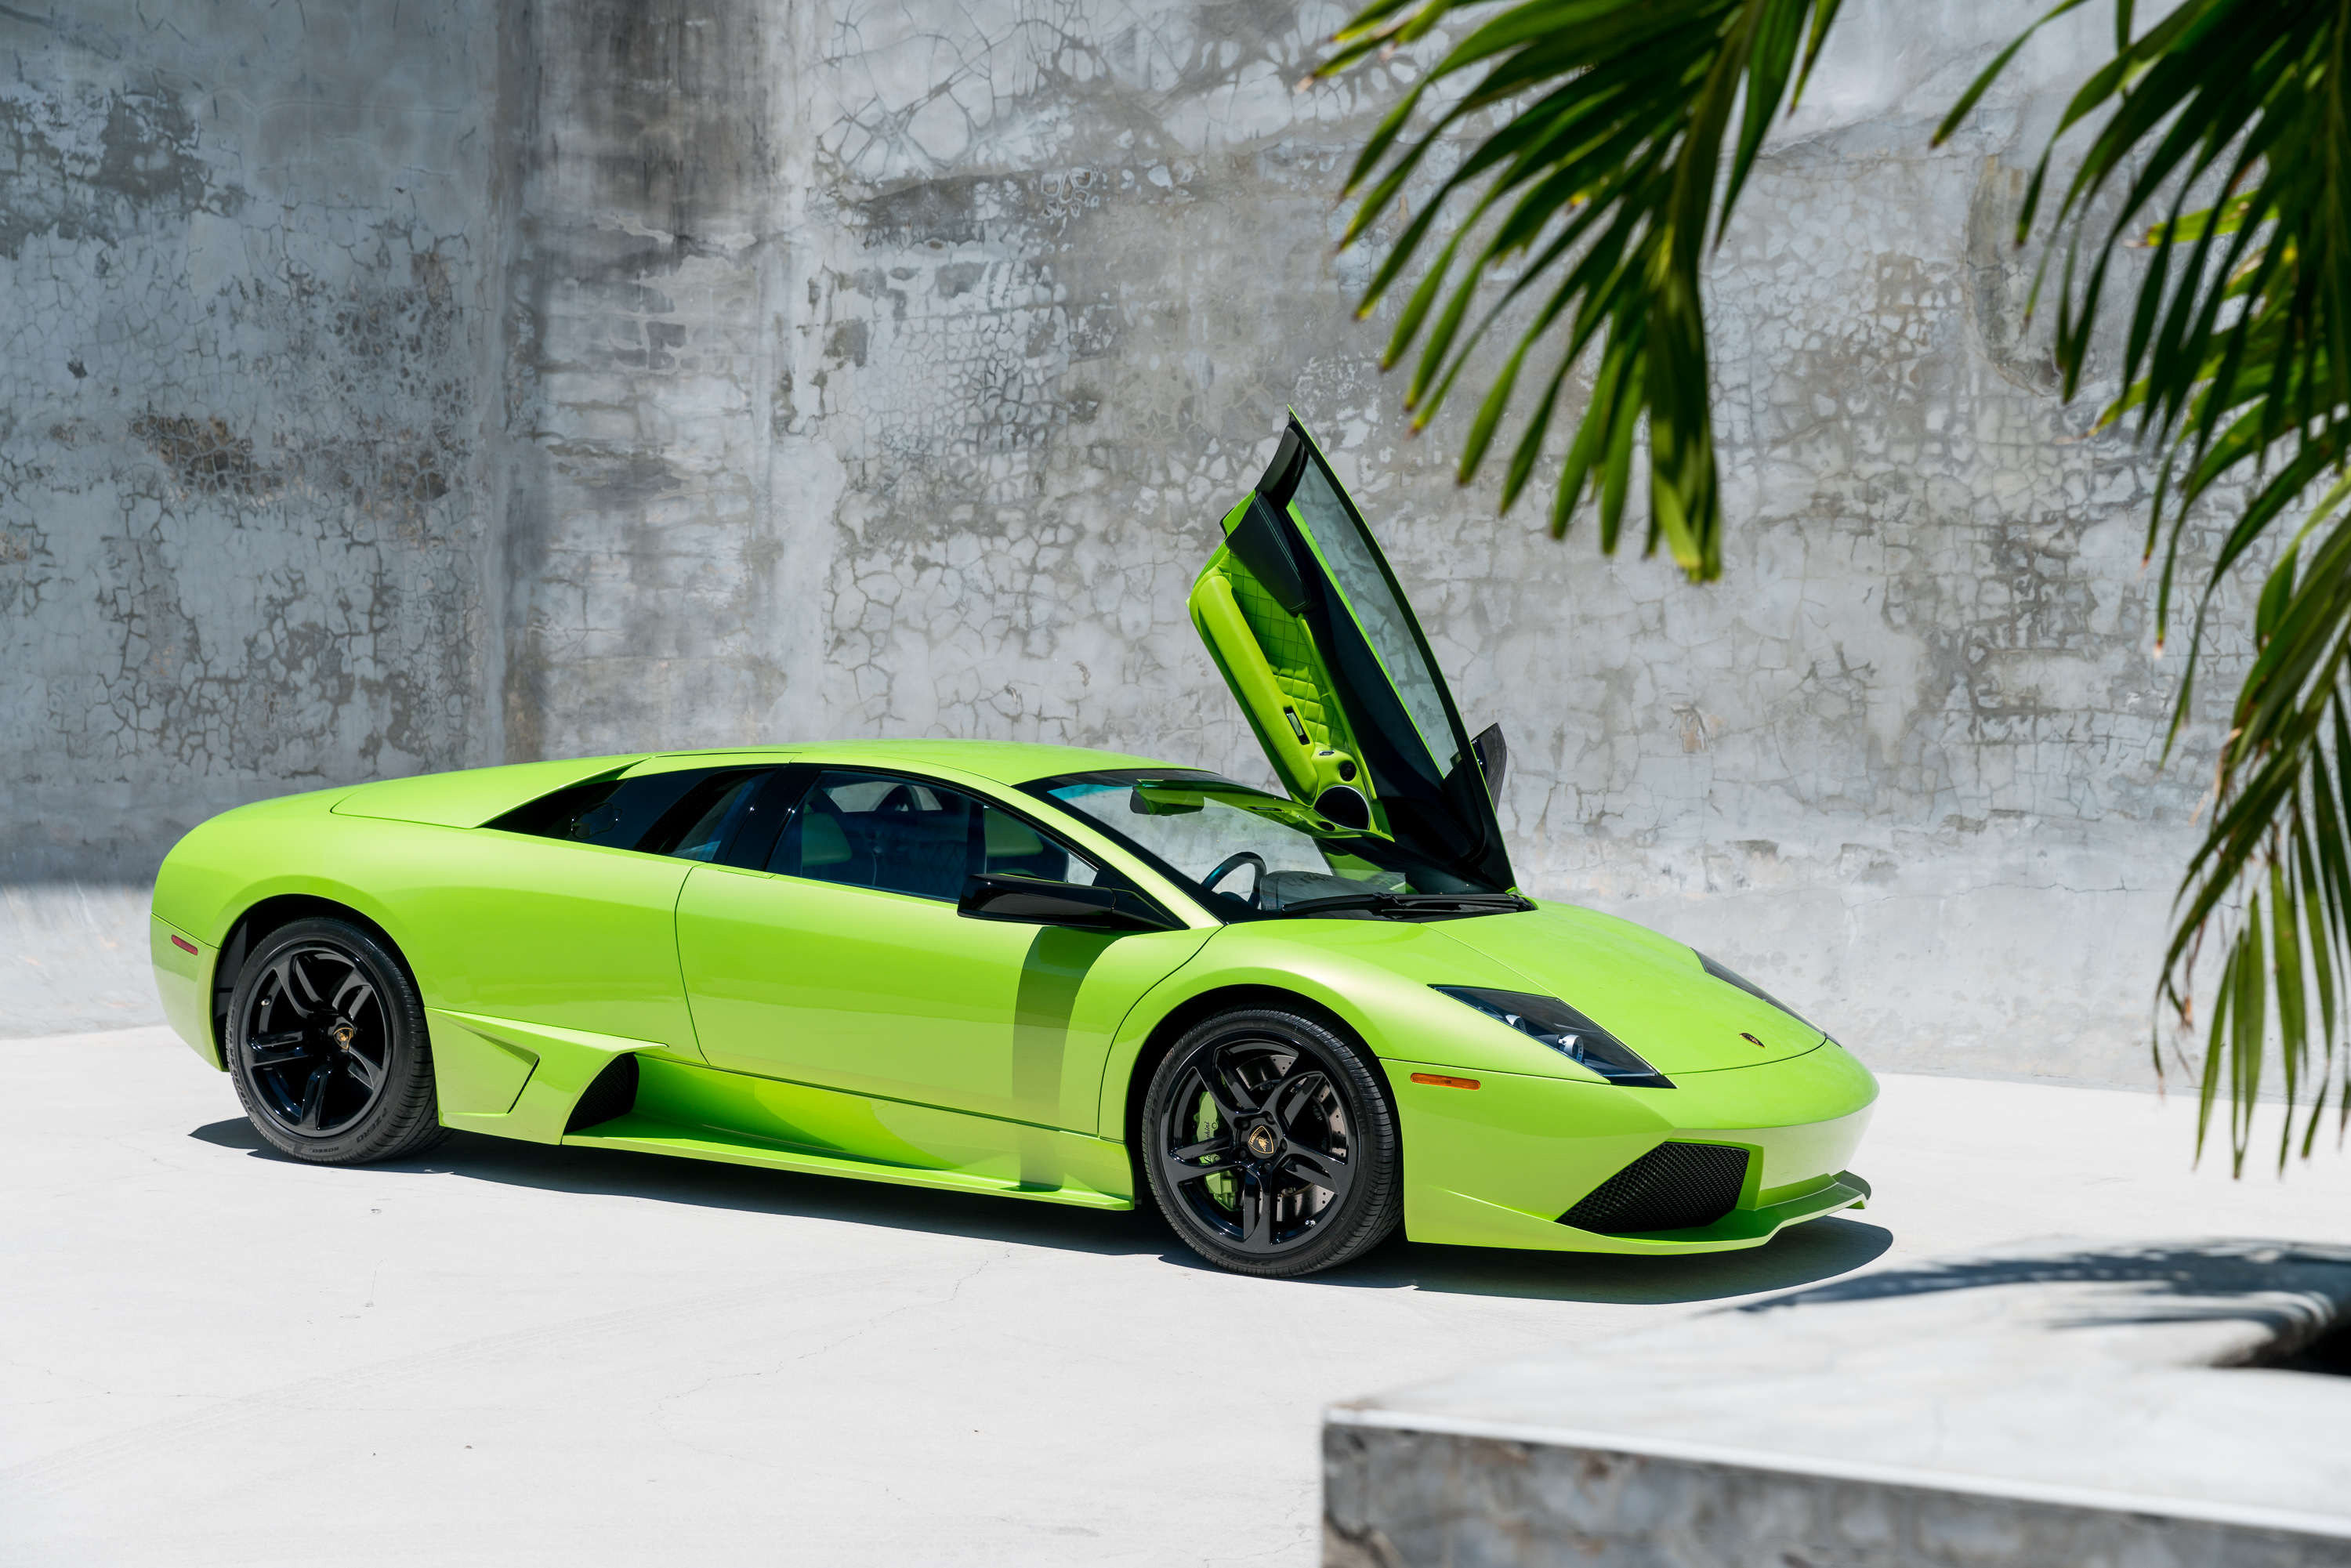 2008 Lamborghini Murcielago Coupe For Sale Curated C